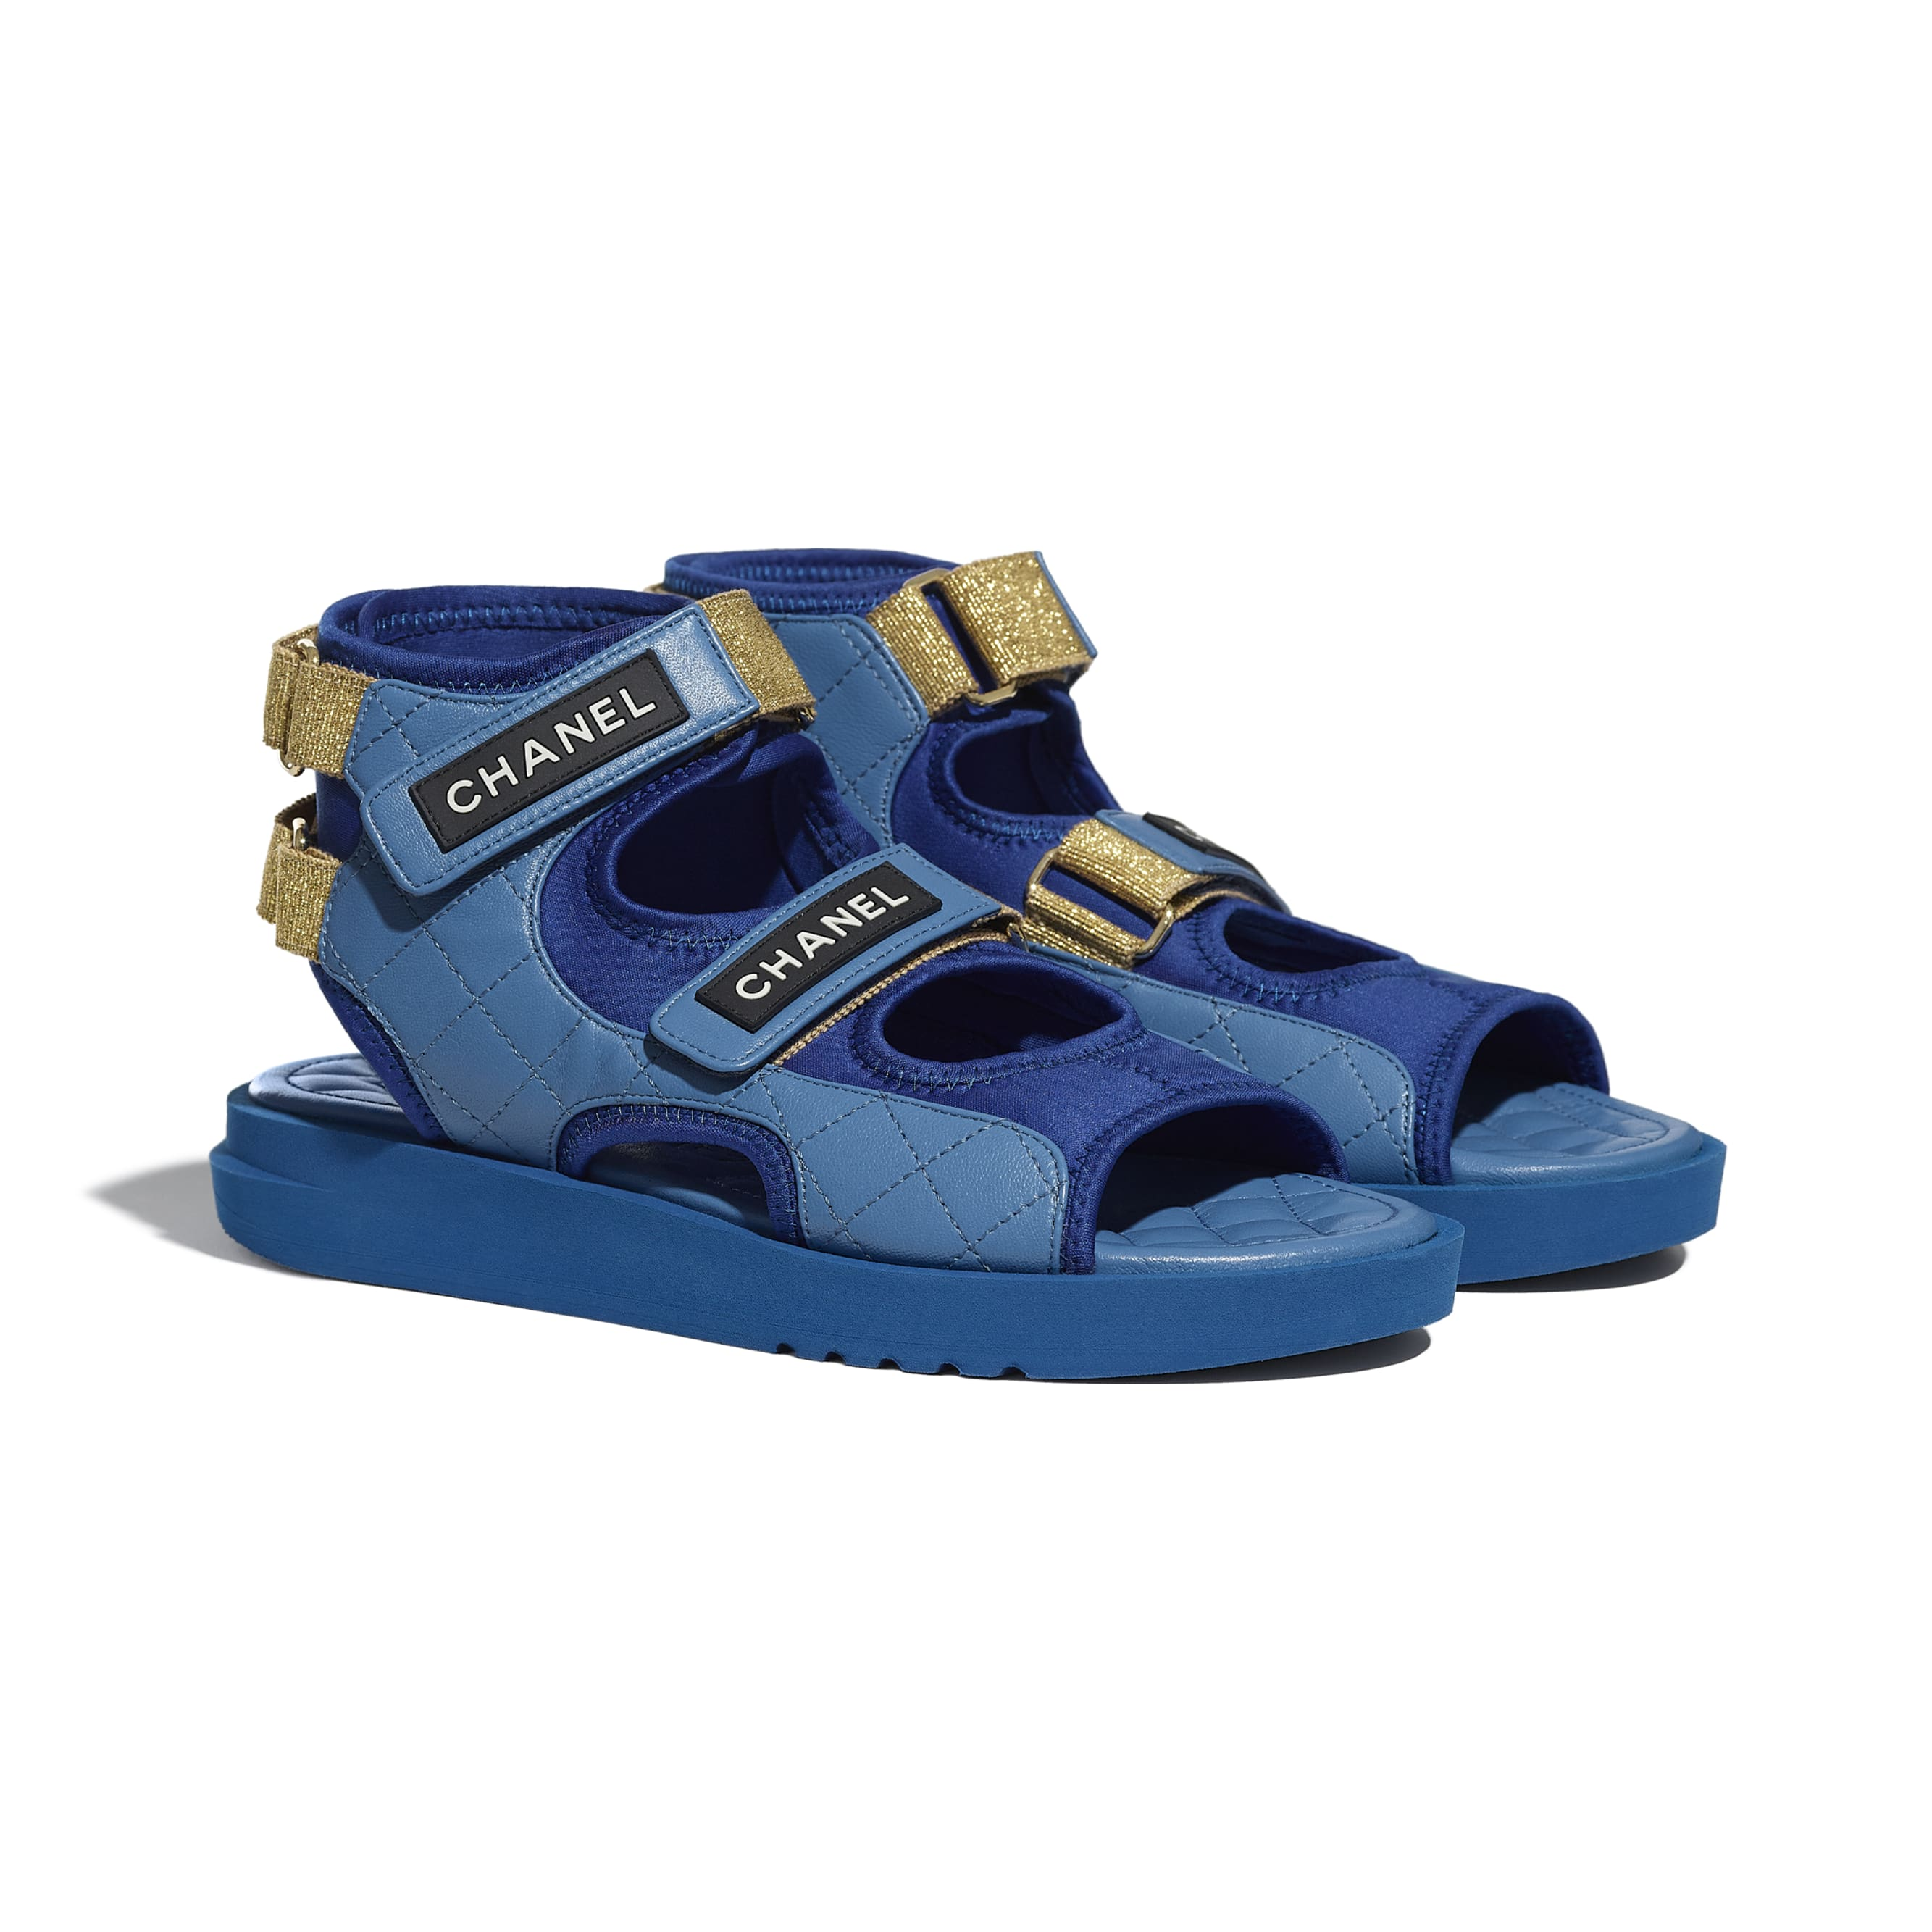 Sandals - Blue, Dark Blue & Black - Goatskin, Fabric & TPU - CHANEL - Alternative view - see standard sized version